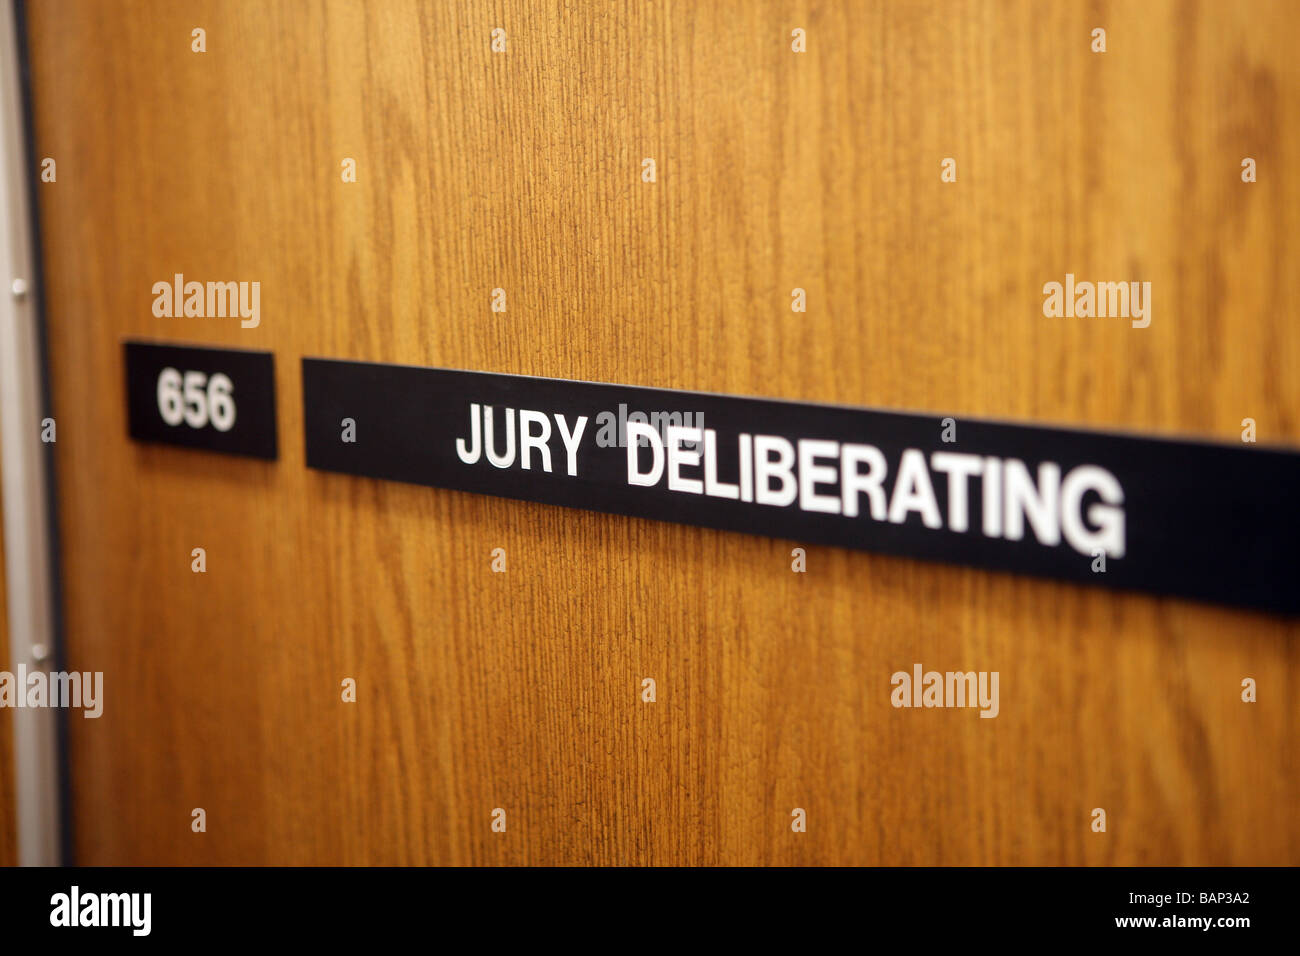 A Jury deliberation room in a USA Courthouse - Stock Image